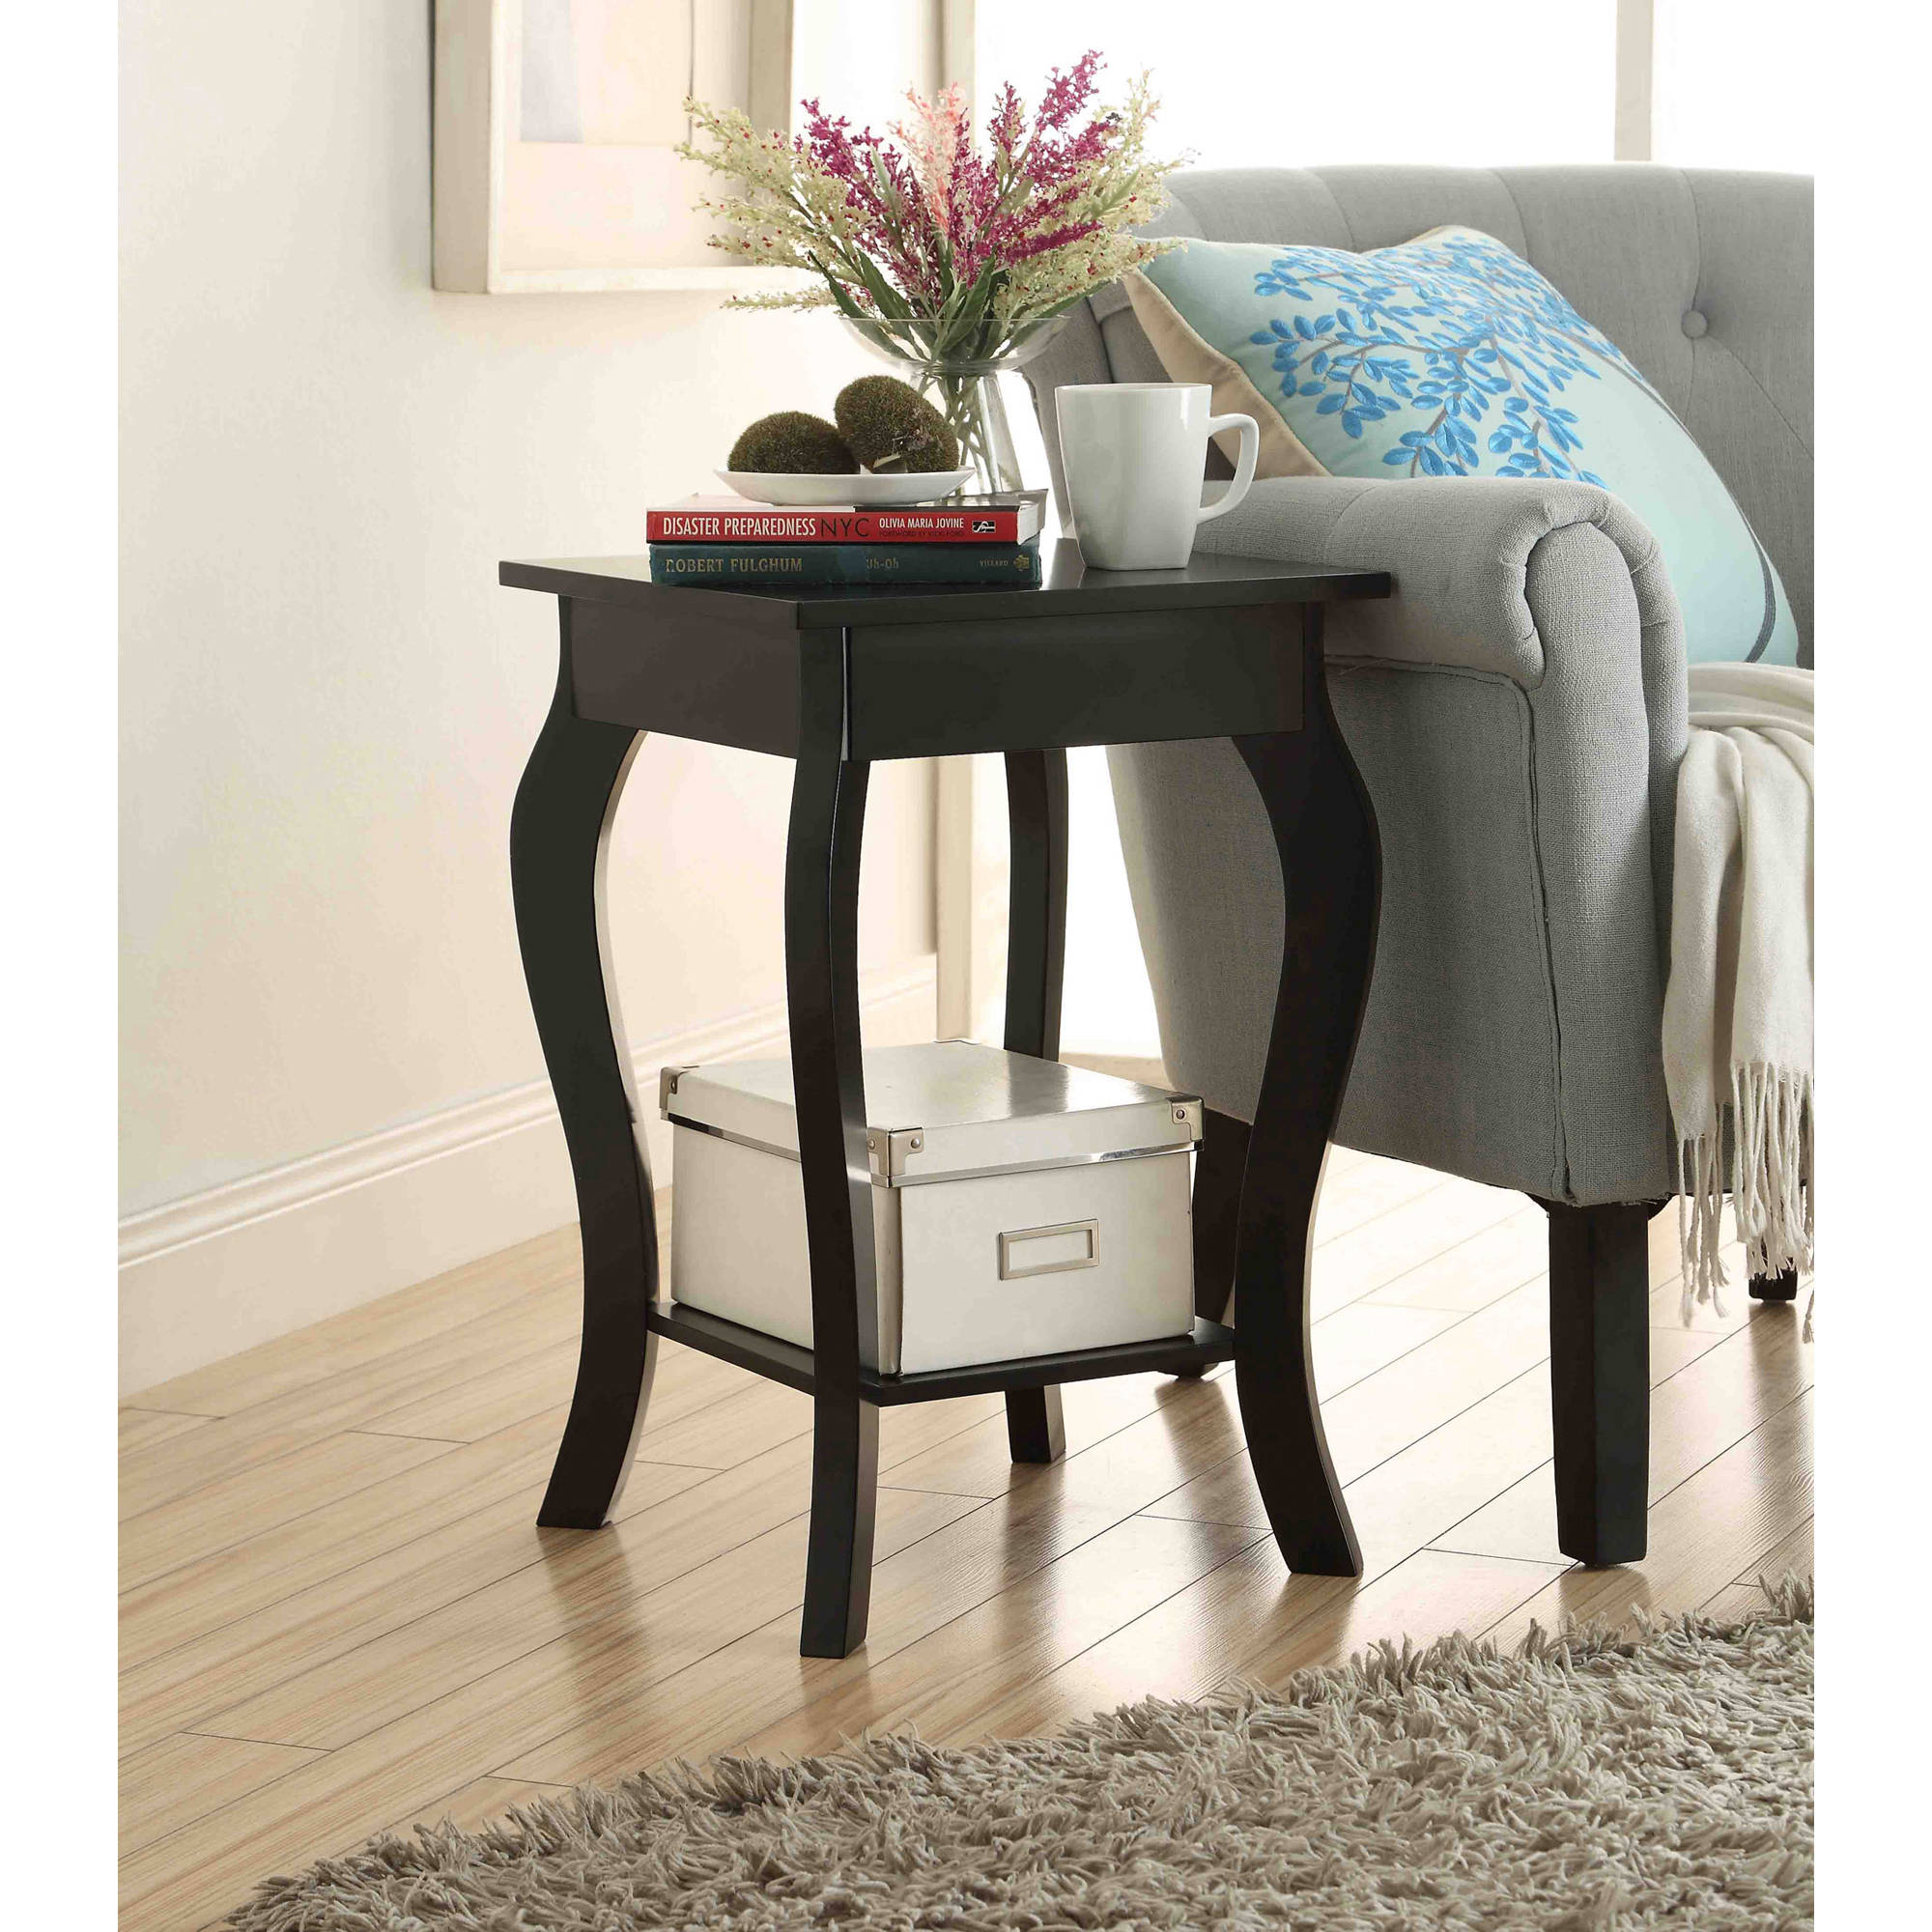 living cabinet threshold tables room round target table ott kijiji furniture decorative accent bench outdoor for gold antique white tall glass and modern storage full size meyda